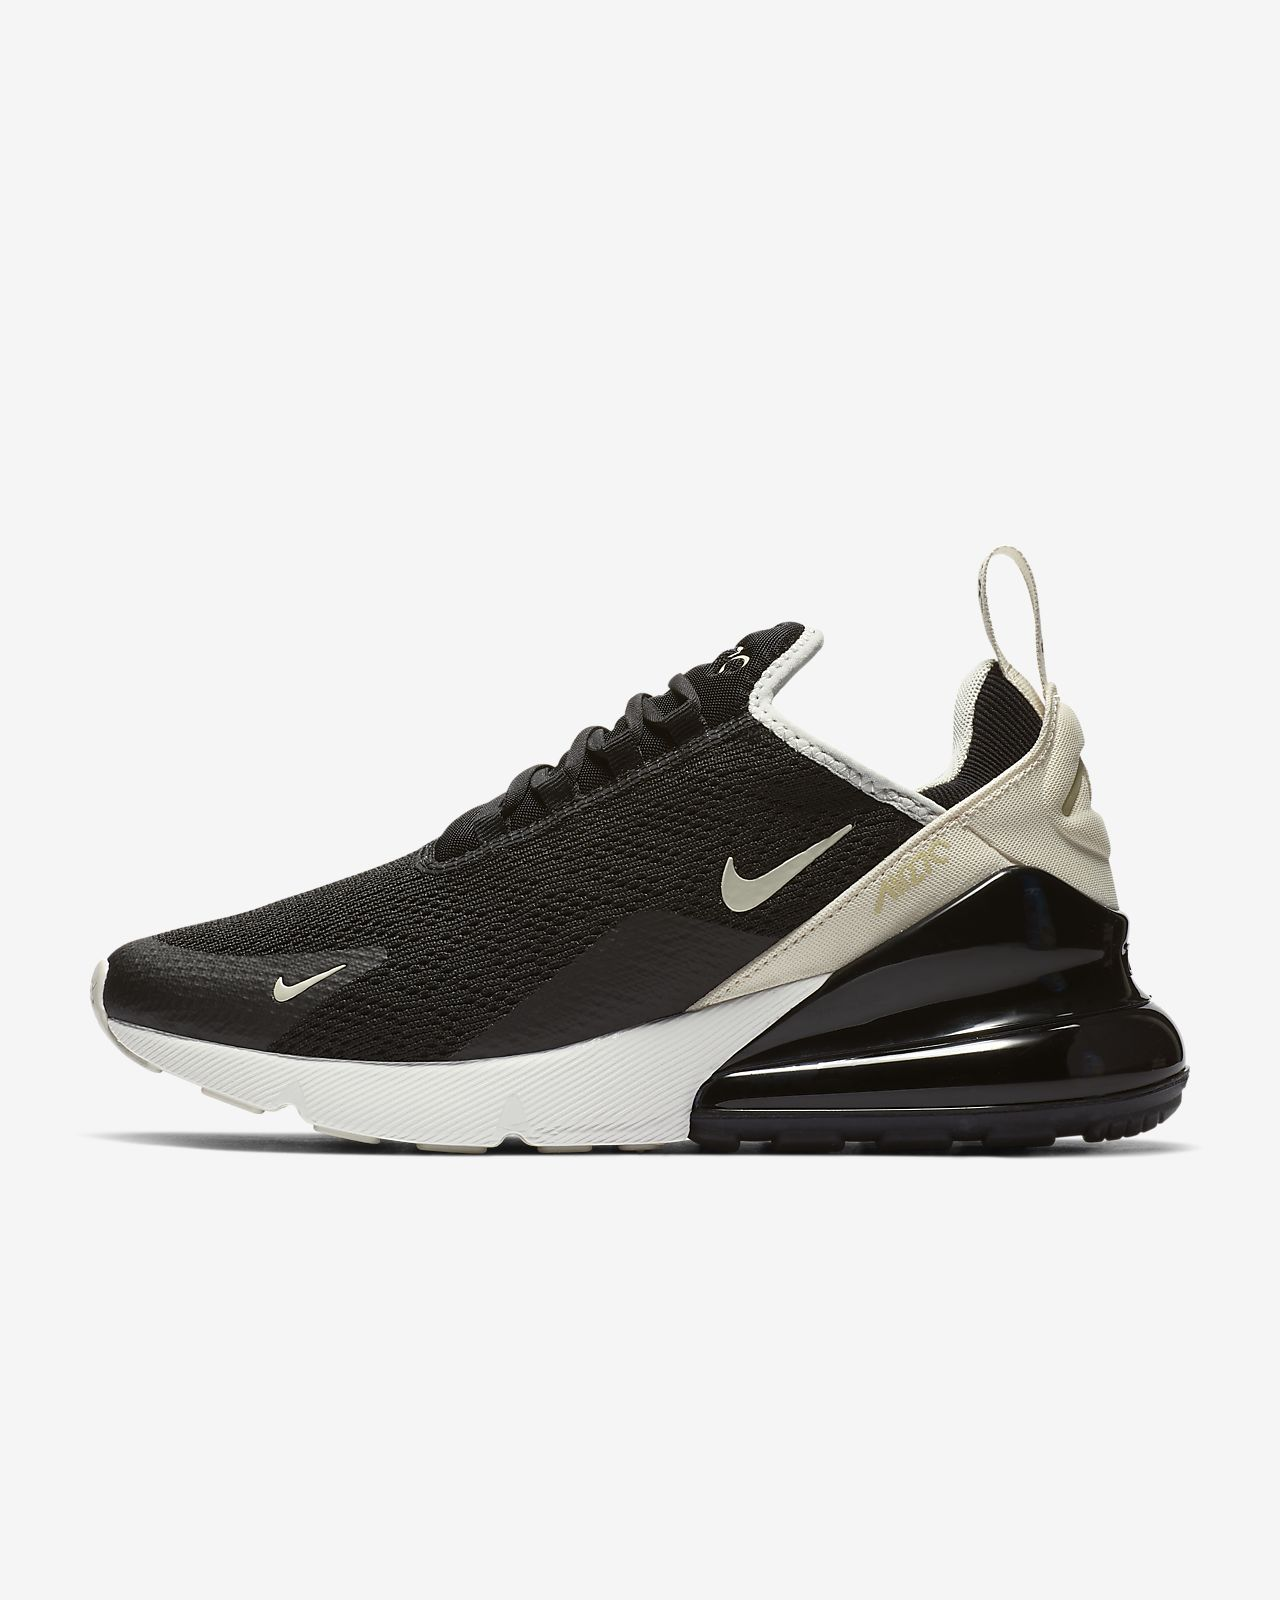 5714837374f4 Nike Air Max 270 Women s Shoe. Nike.com ZA